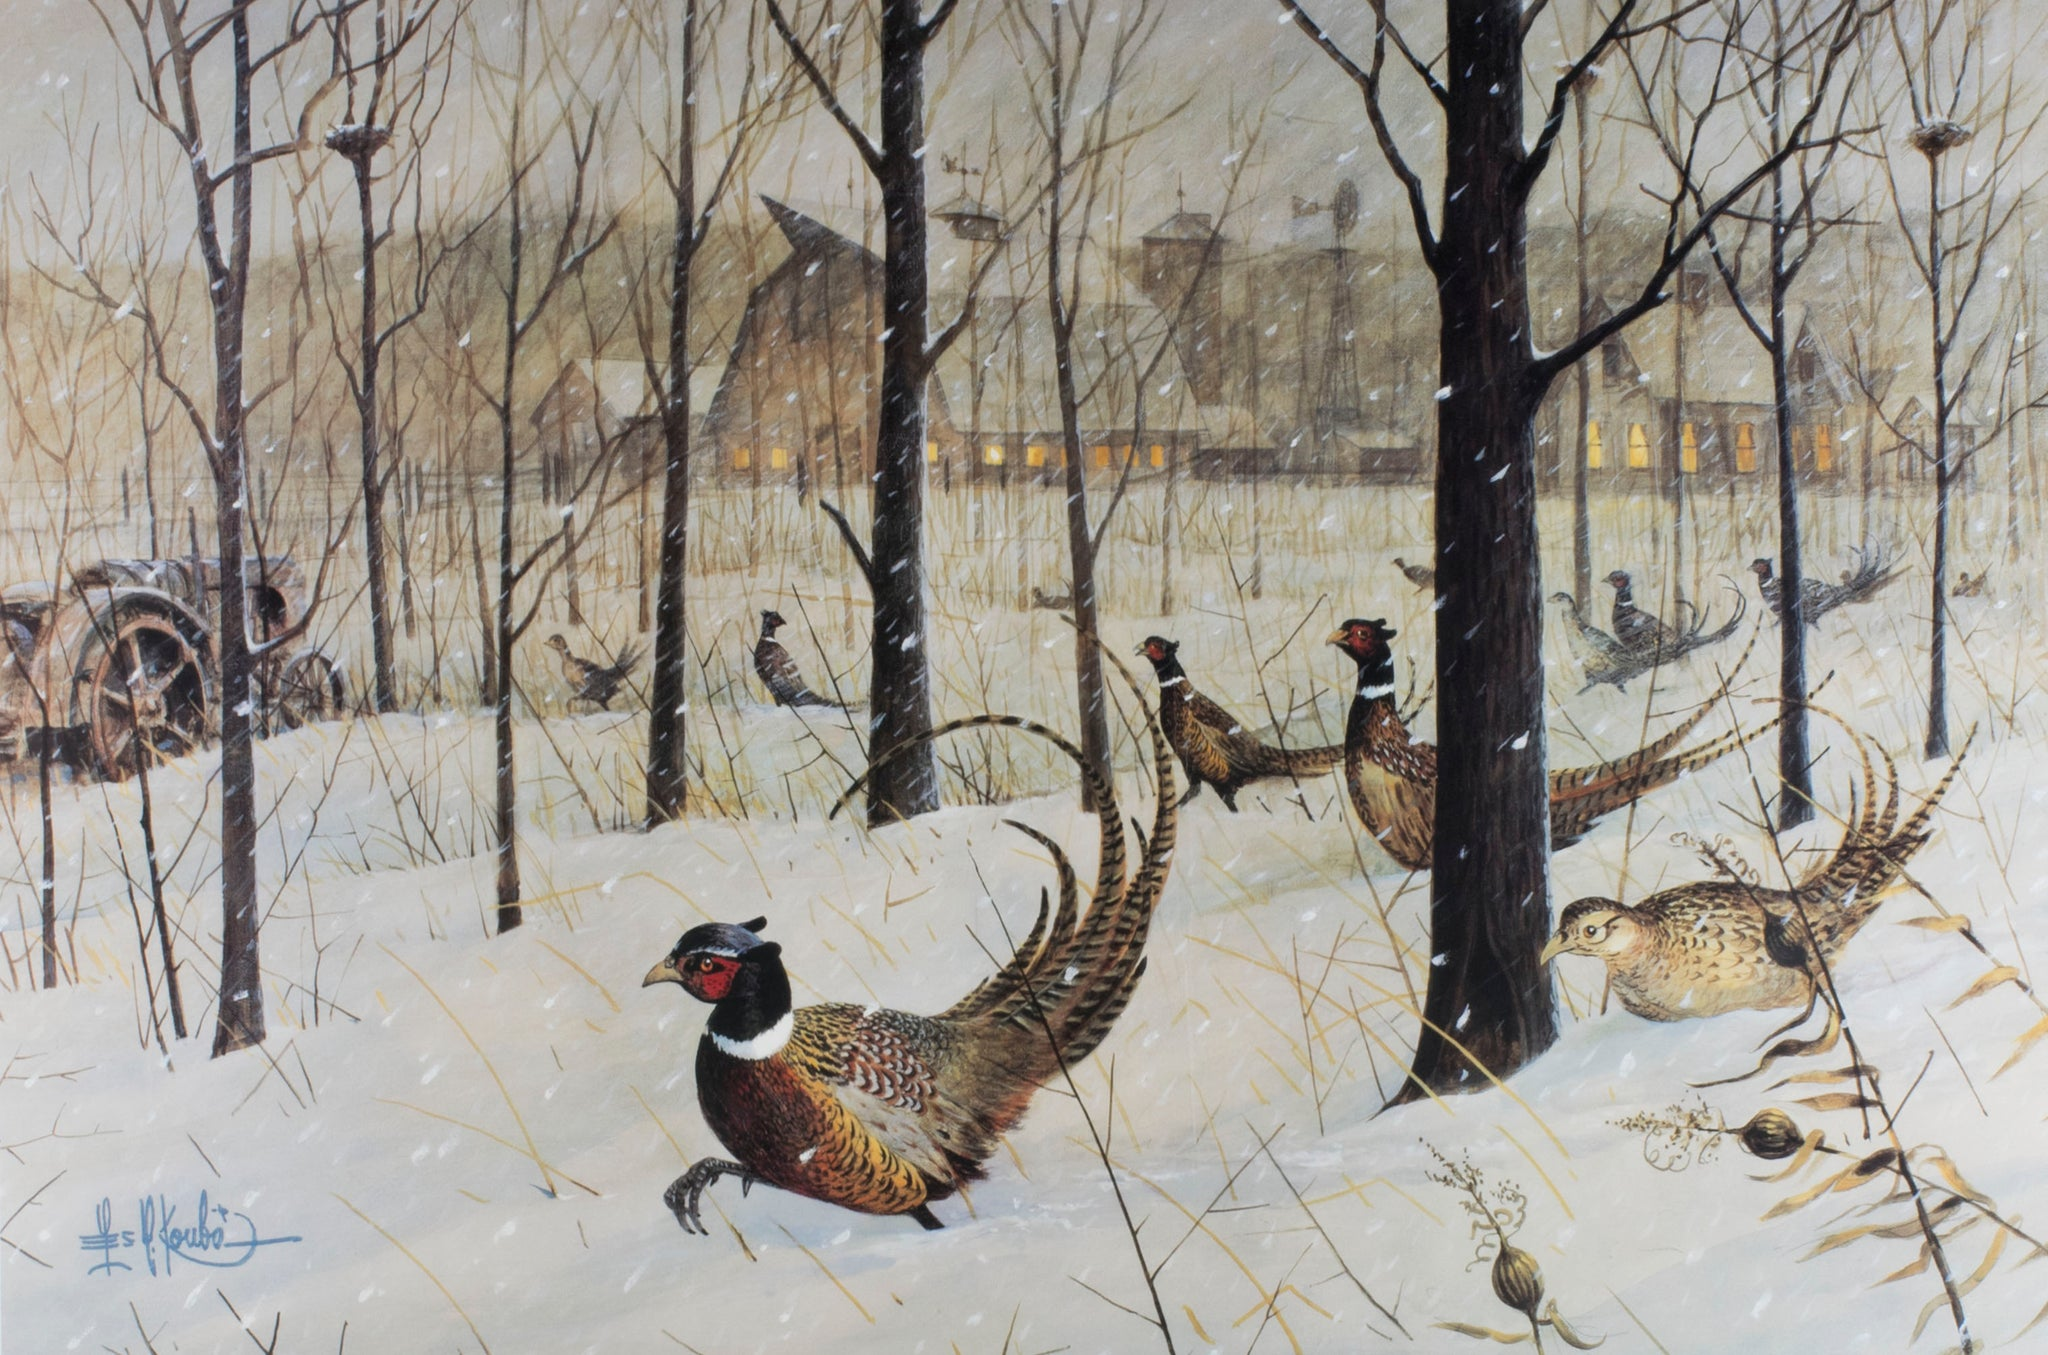 """The Blizzard"" by Les G. Kouba les g. kouba, paintings-wildlife, phesants, print, sale item"